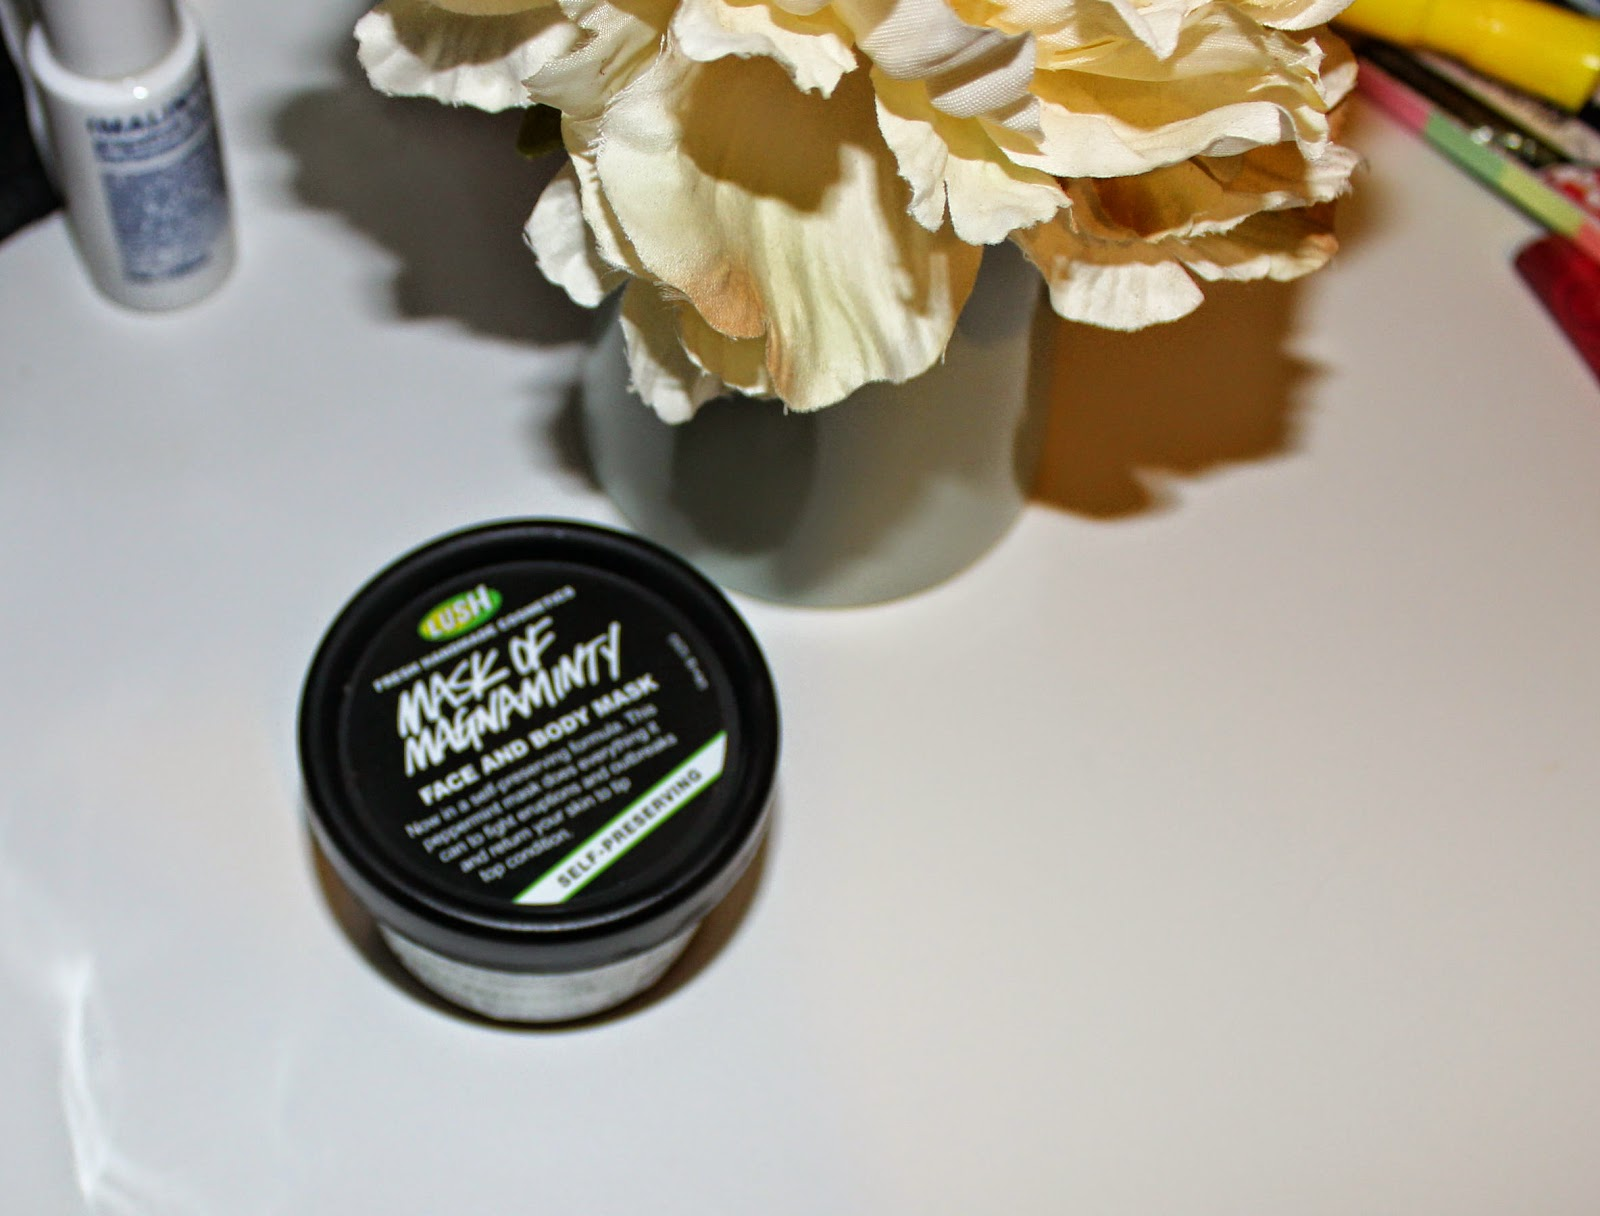 Lush mask of magnaminty review, Lush mask of magnaminty